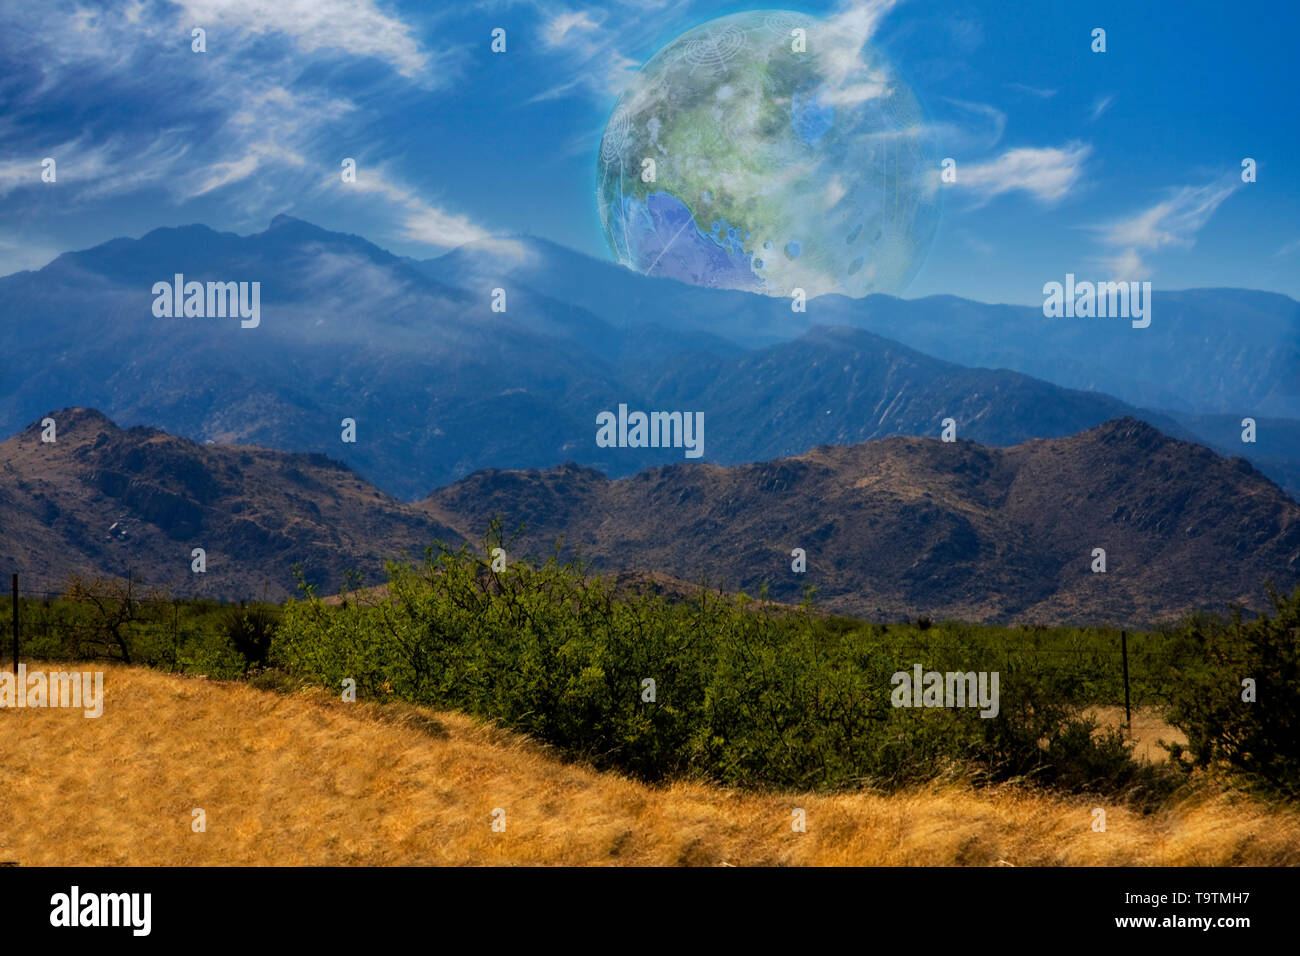 Terraforming Of The Moon Stock Photos & Terraforming Of The ... on nasa moon map, europa moon map, titan moon map, venus map, mars with oceans map, triton moon map, high resolution moon map, topographic moon map, colonized moon map, moon texture map, national geographic moon map,